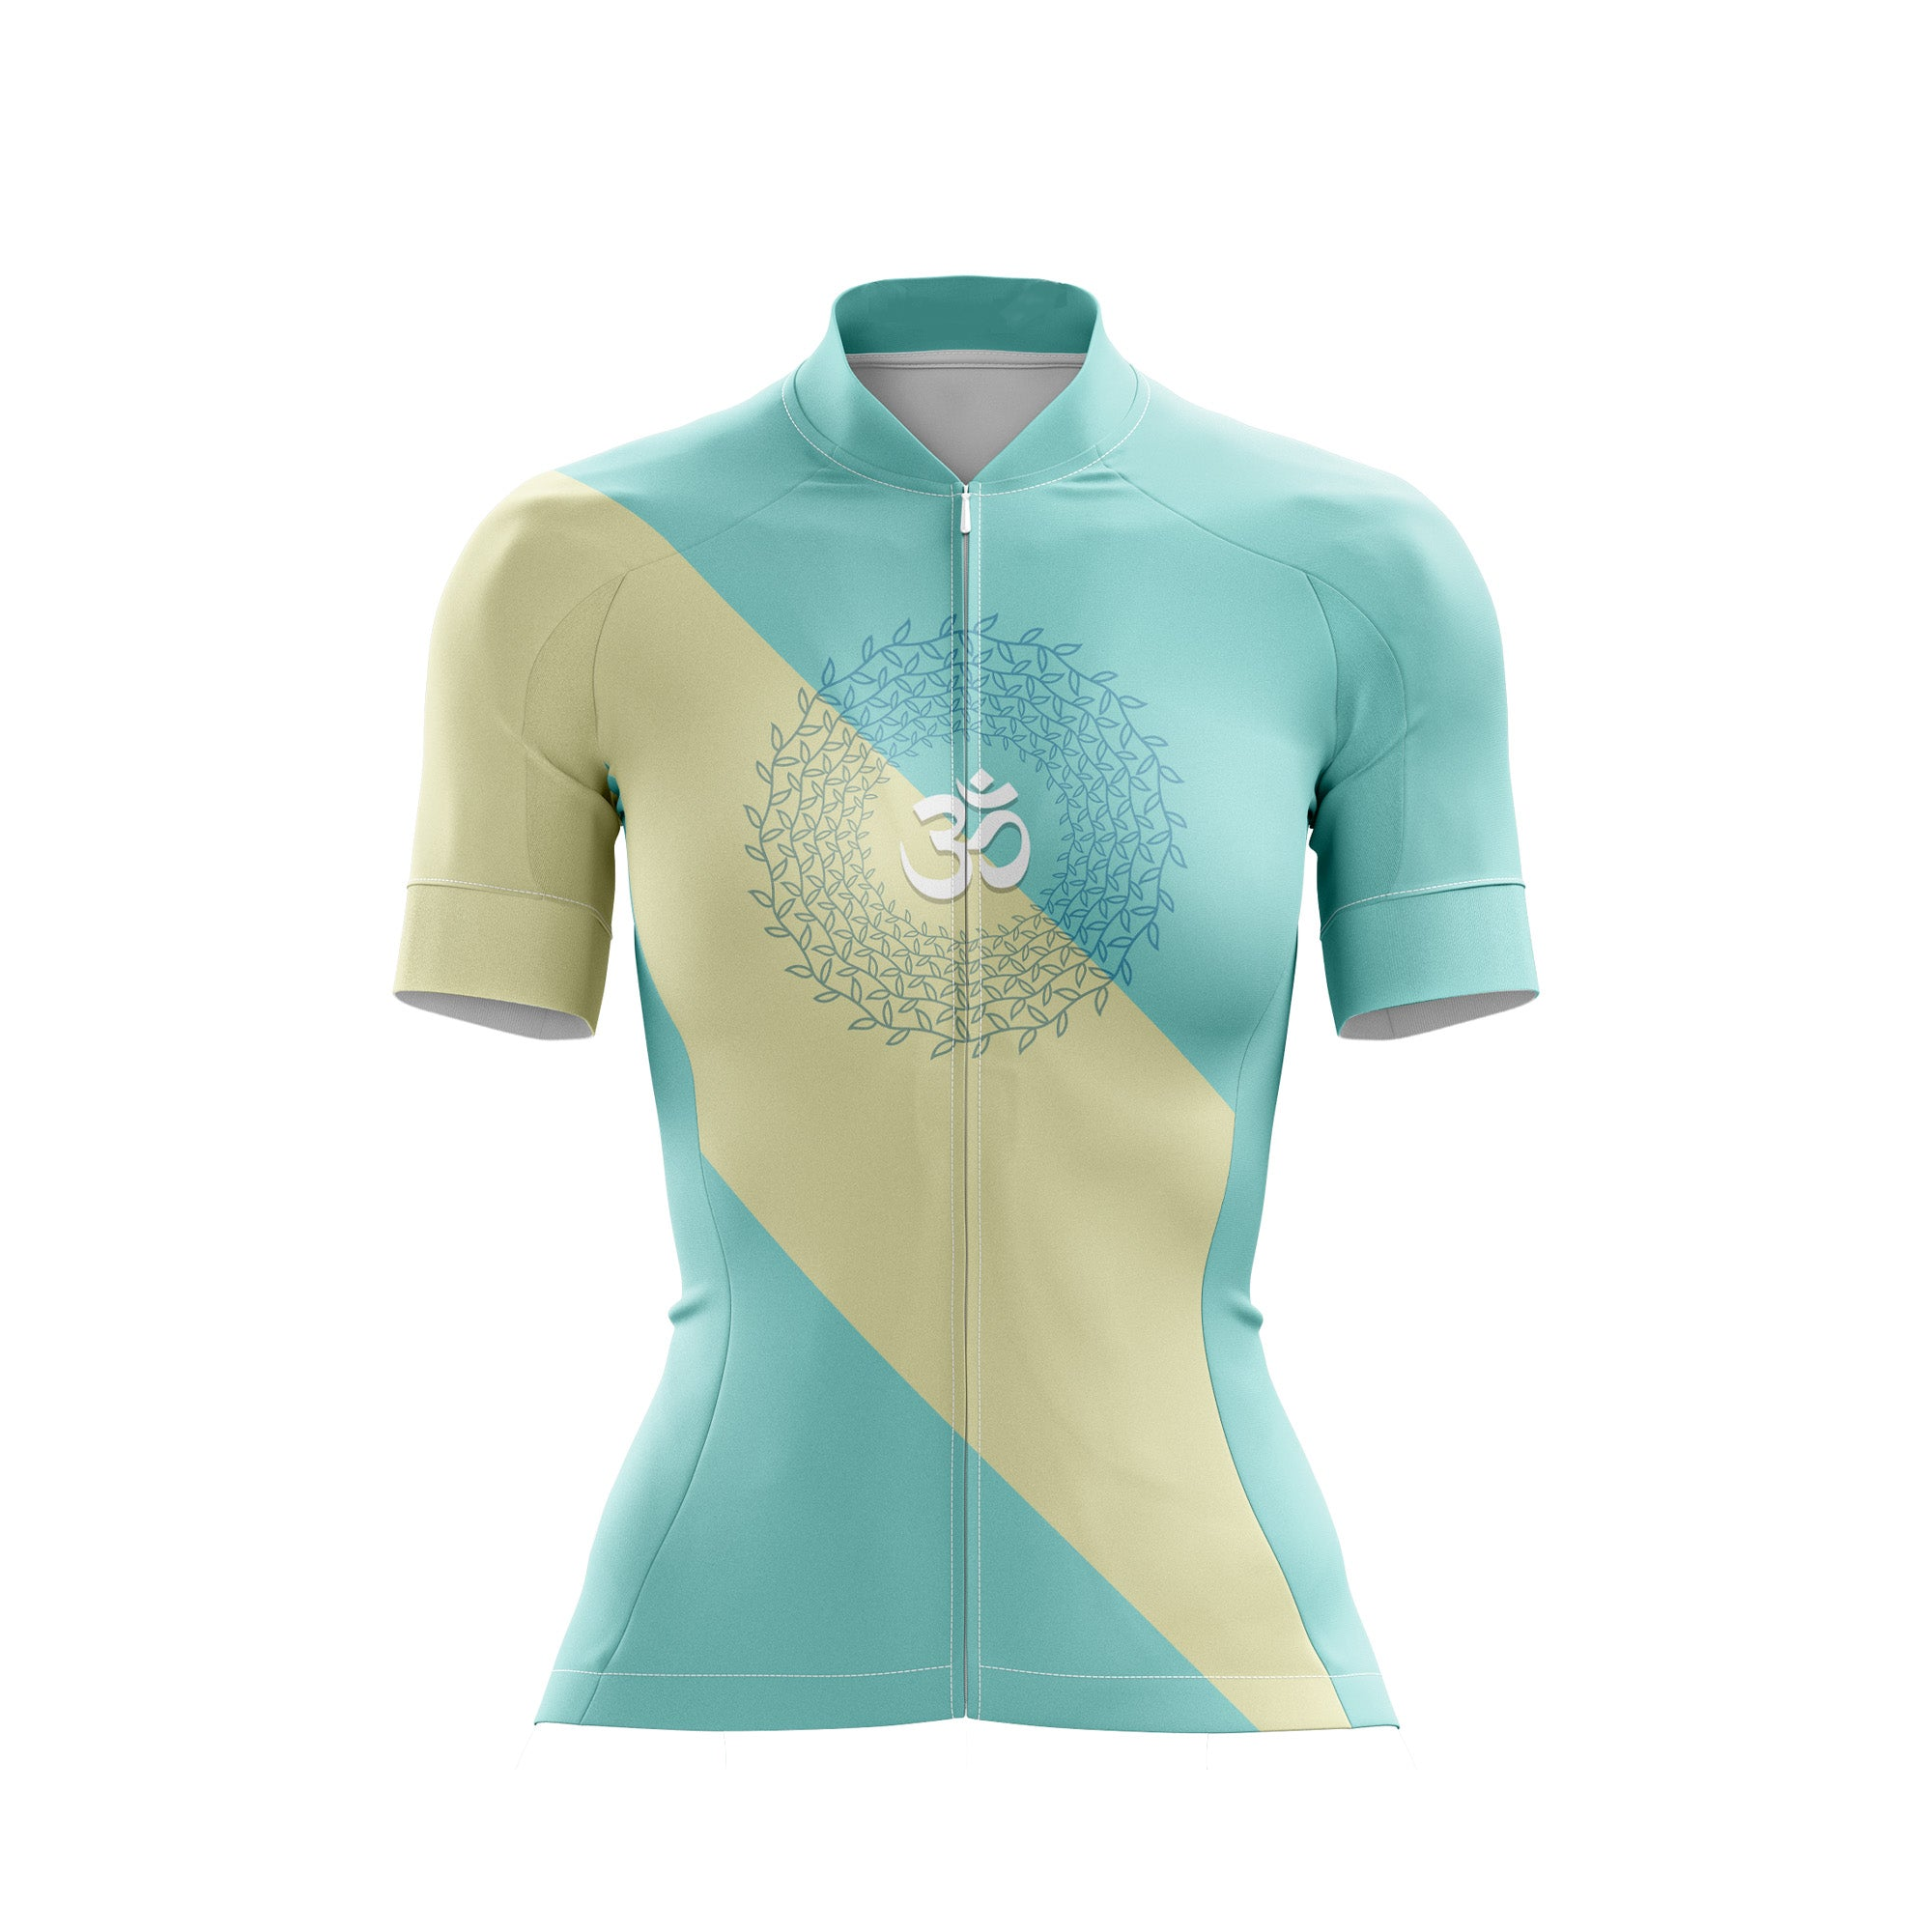 Om meditation female cycling jersey